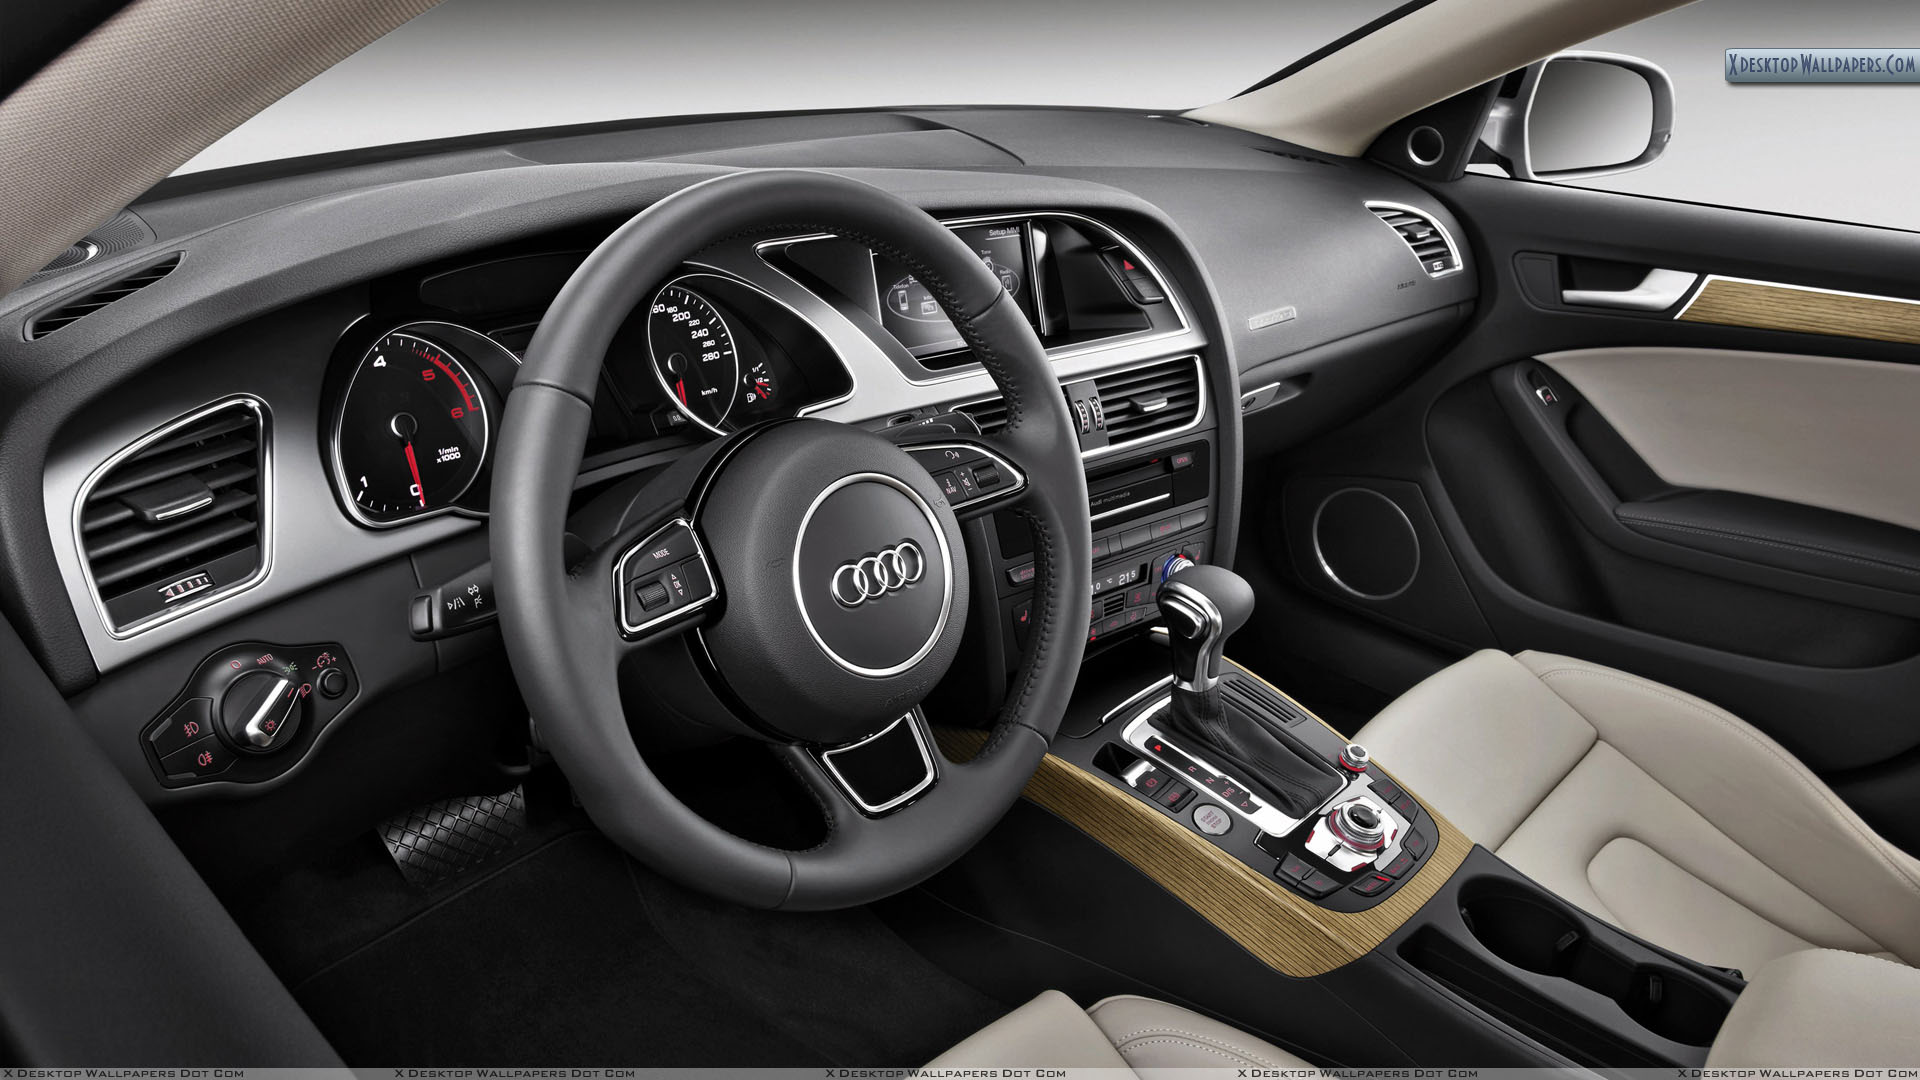 2012 Audi A5 Sportback Interior Picture Wallpaper